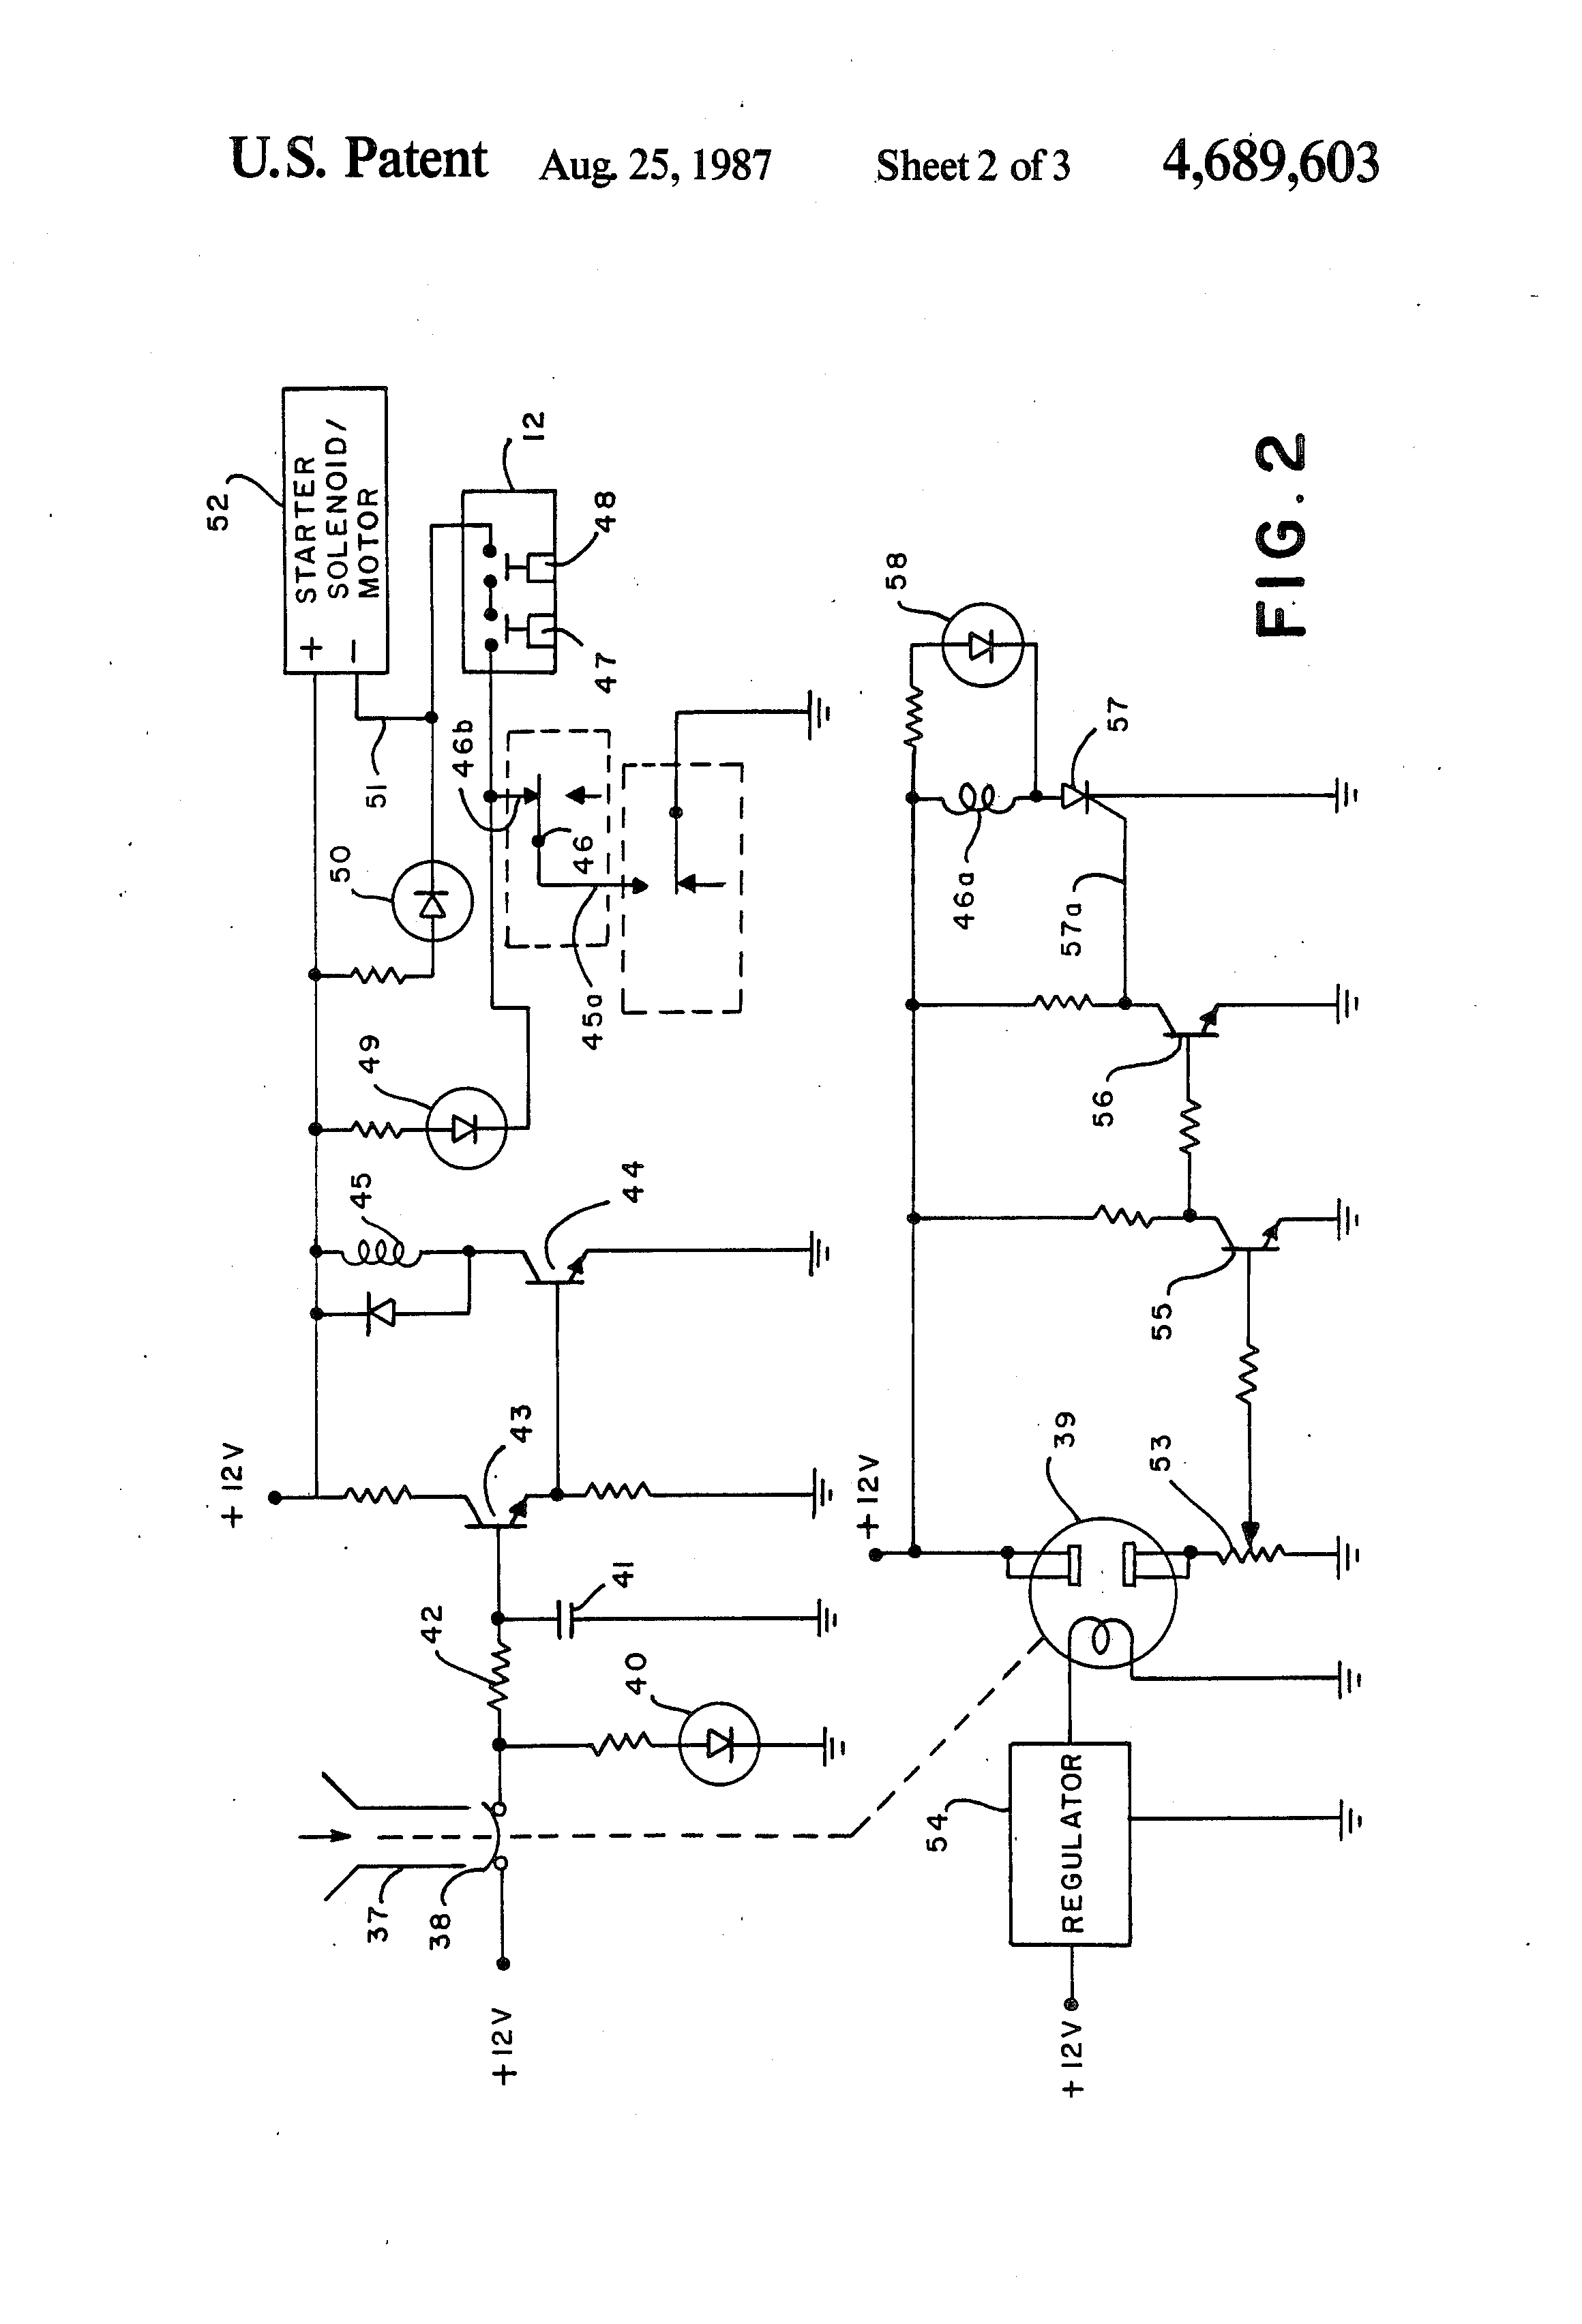 US4689603 2 draeger interlock wiring diagram on draeger download wirning diagrams  at pacquiaovsvargaslive.co